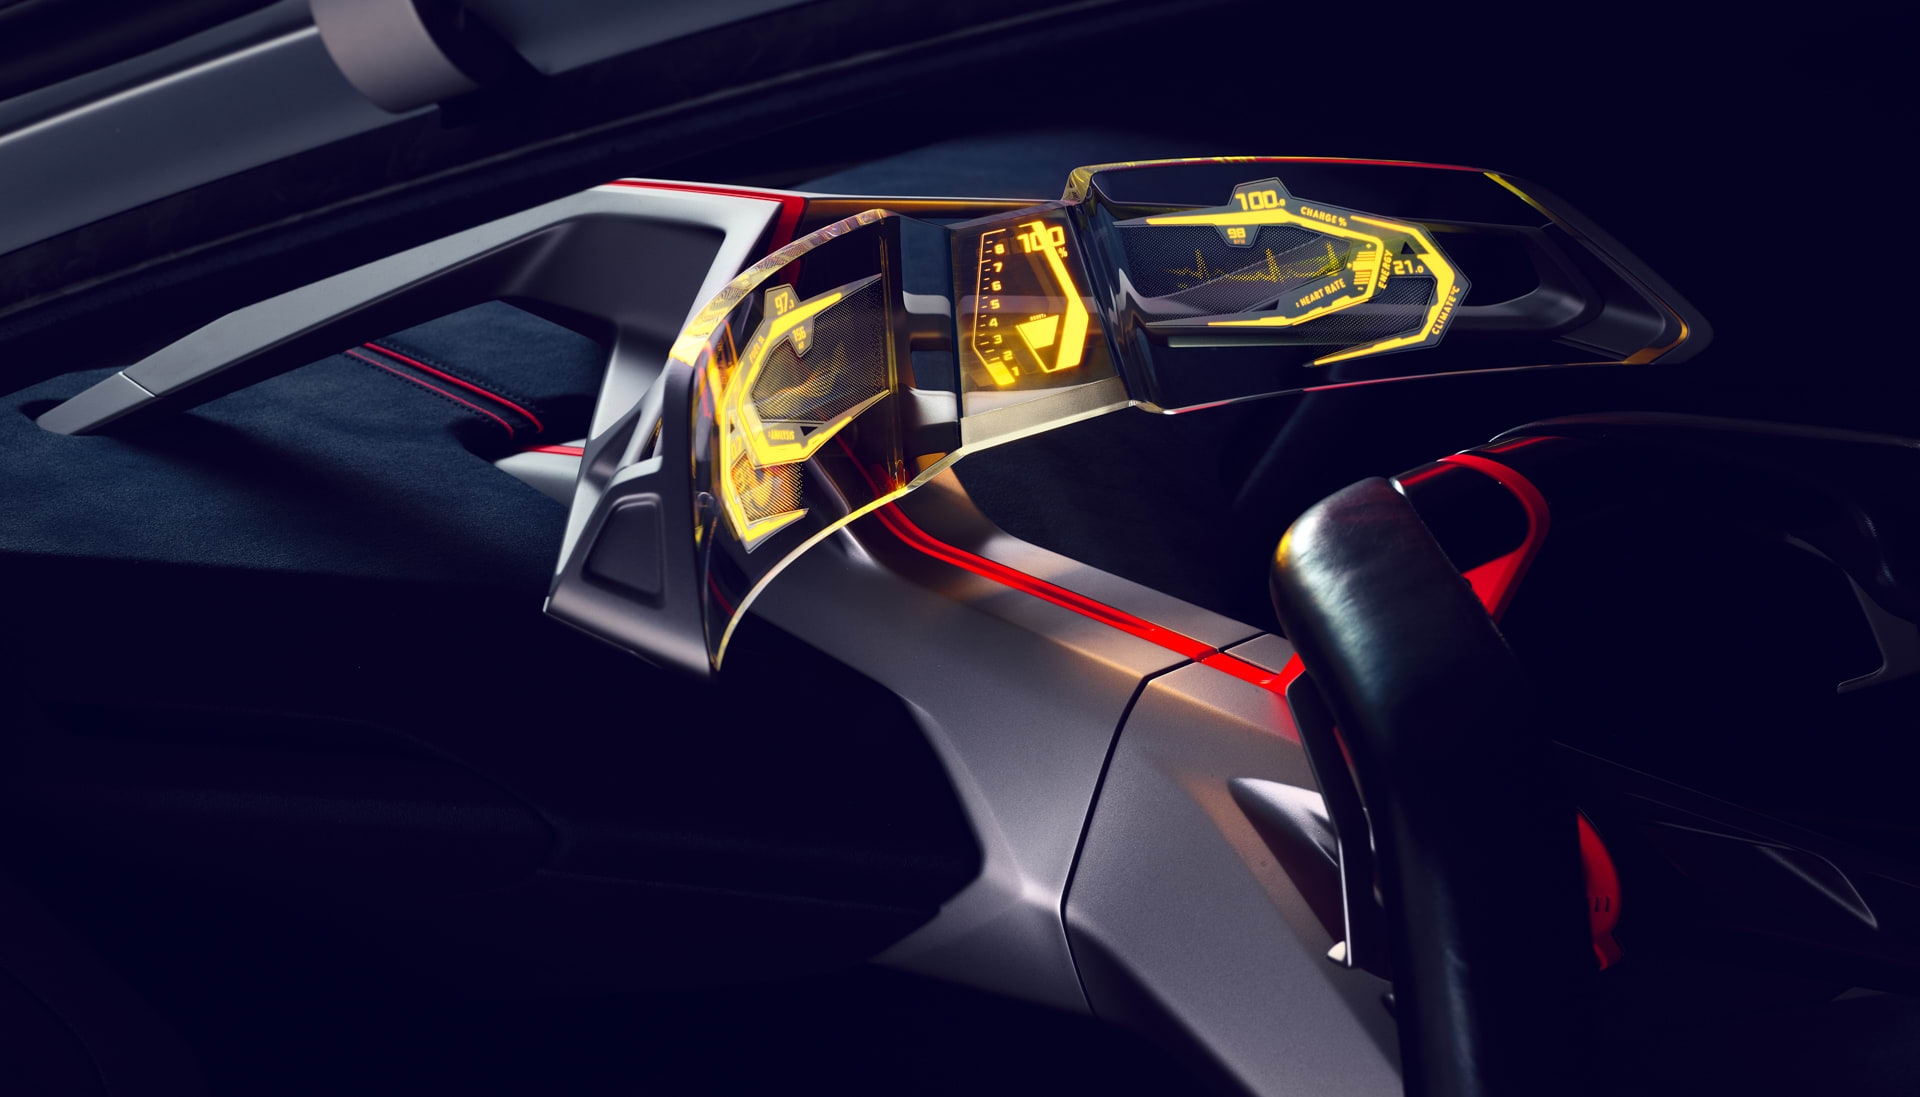 Bmw Vision M Next An Autonomous Car For People Who Love Driving